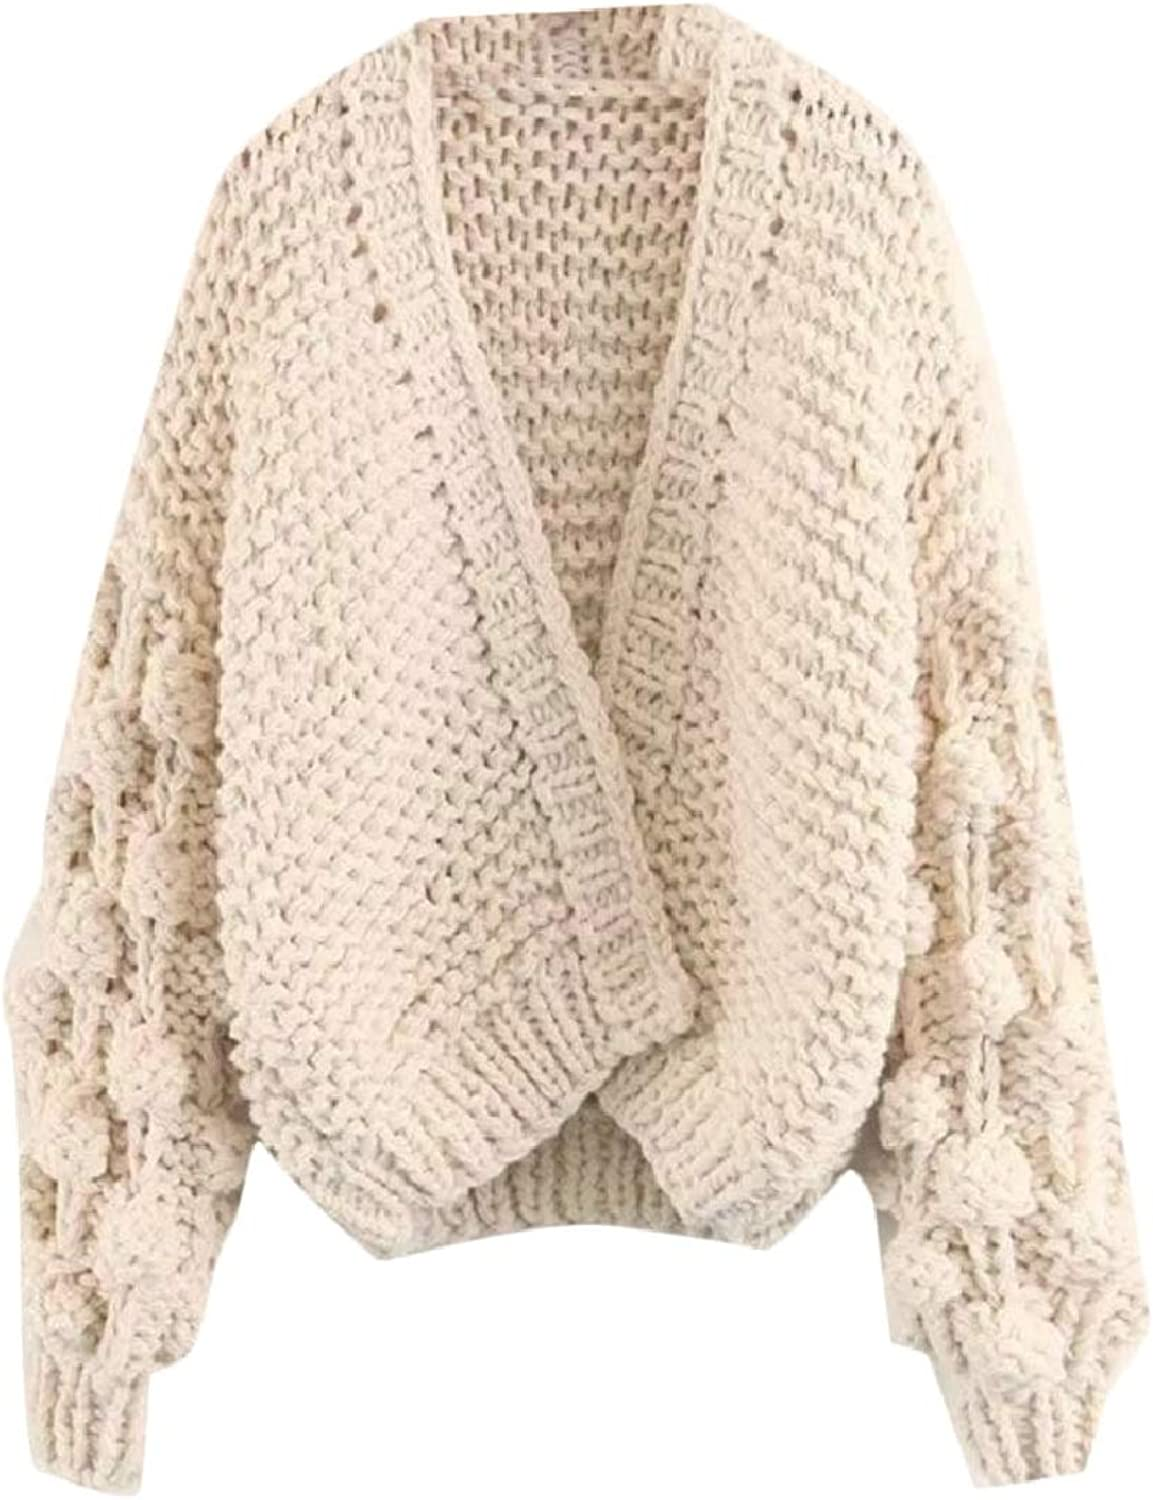 CBTLVSN Womens Cable Knit Chunky Cardigan Sweater Solid Lantern Sleeve Outwear